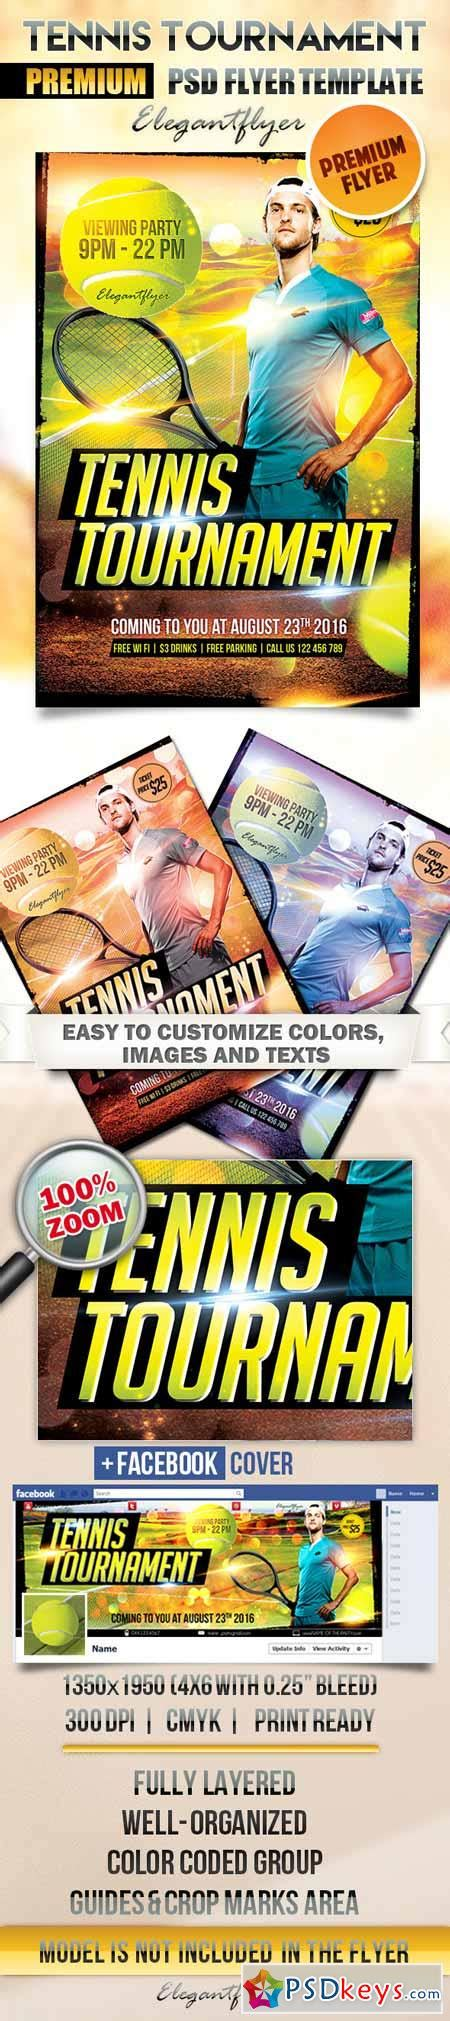 Tennis Tournament Flyer Psd Template Facebook Cover 187 Free Download Photoshop Vector Stock Tournament Flyer Template Free